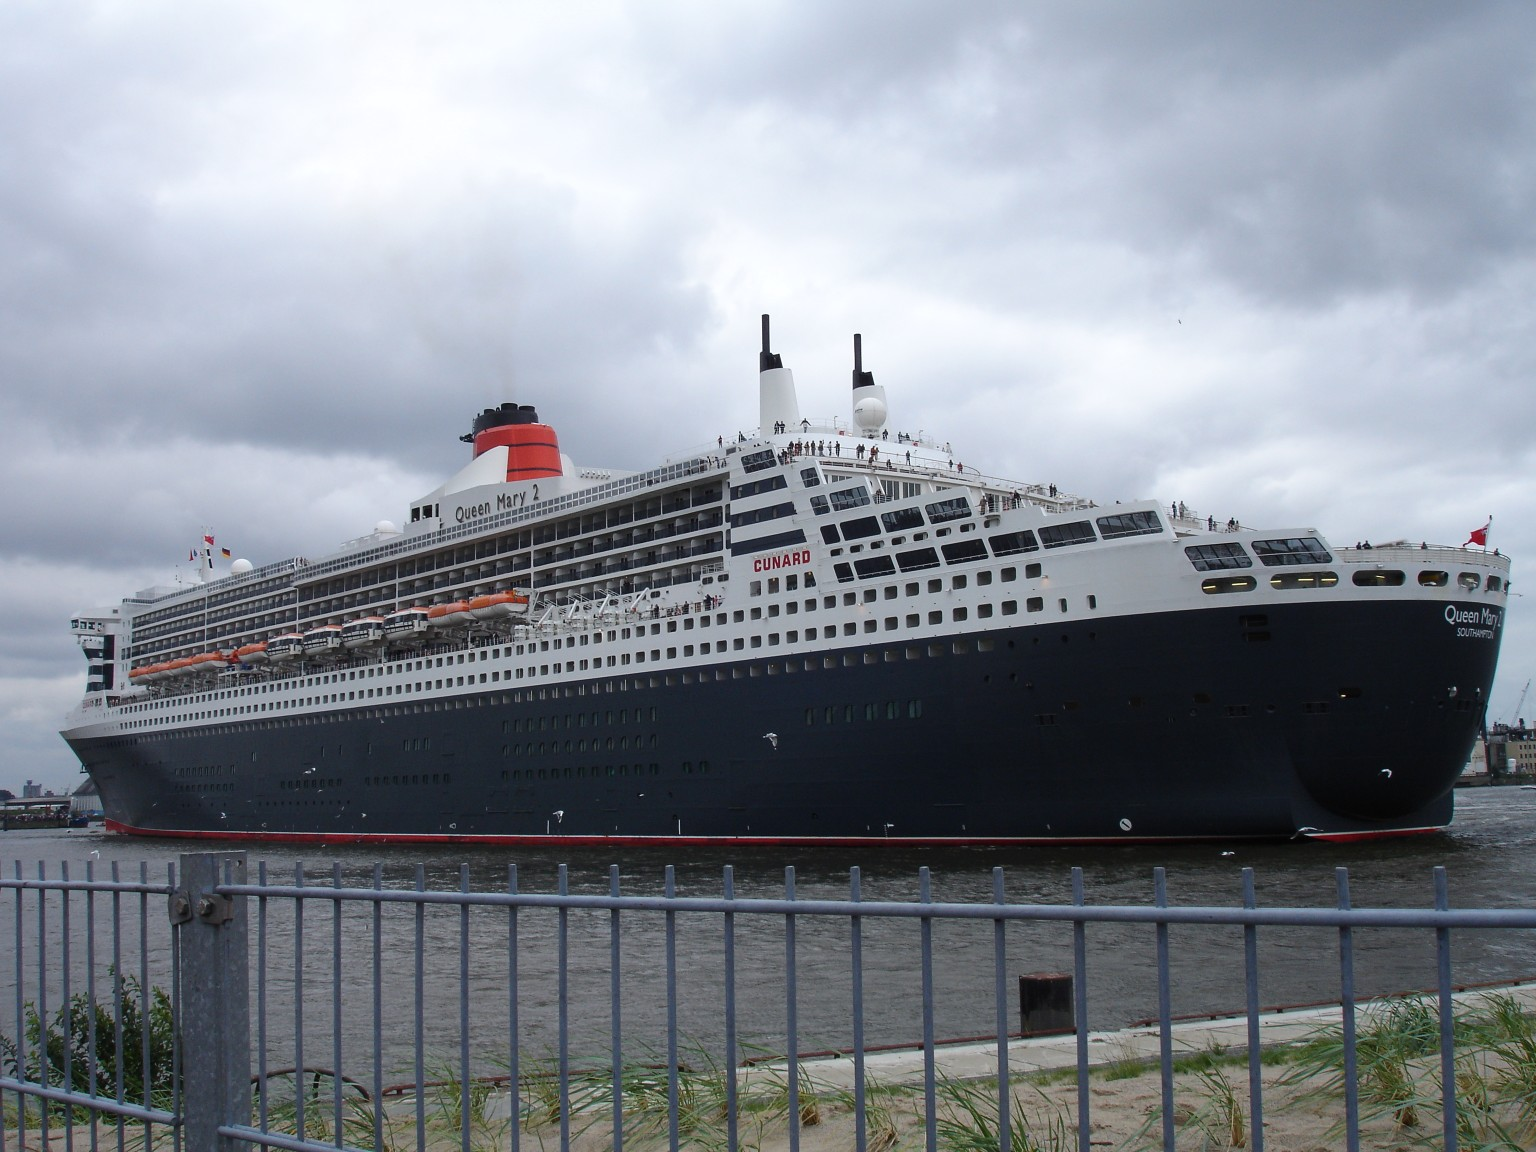 Queen Mary  Aft Harmonic Room Explosion